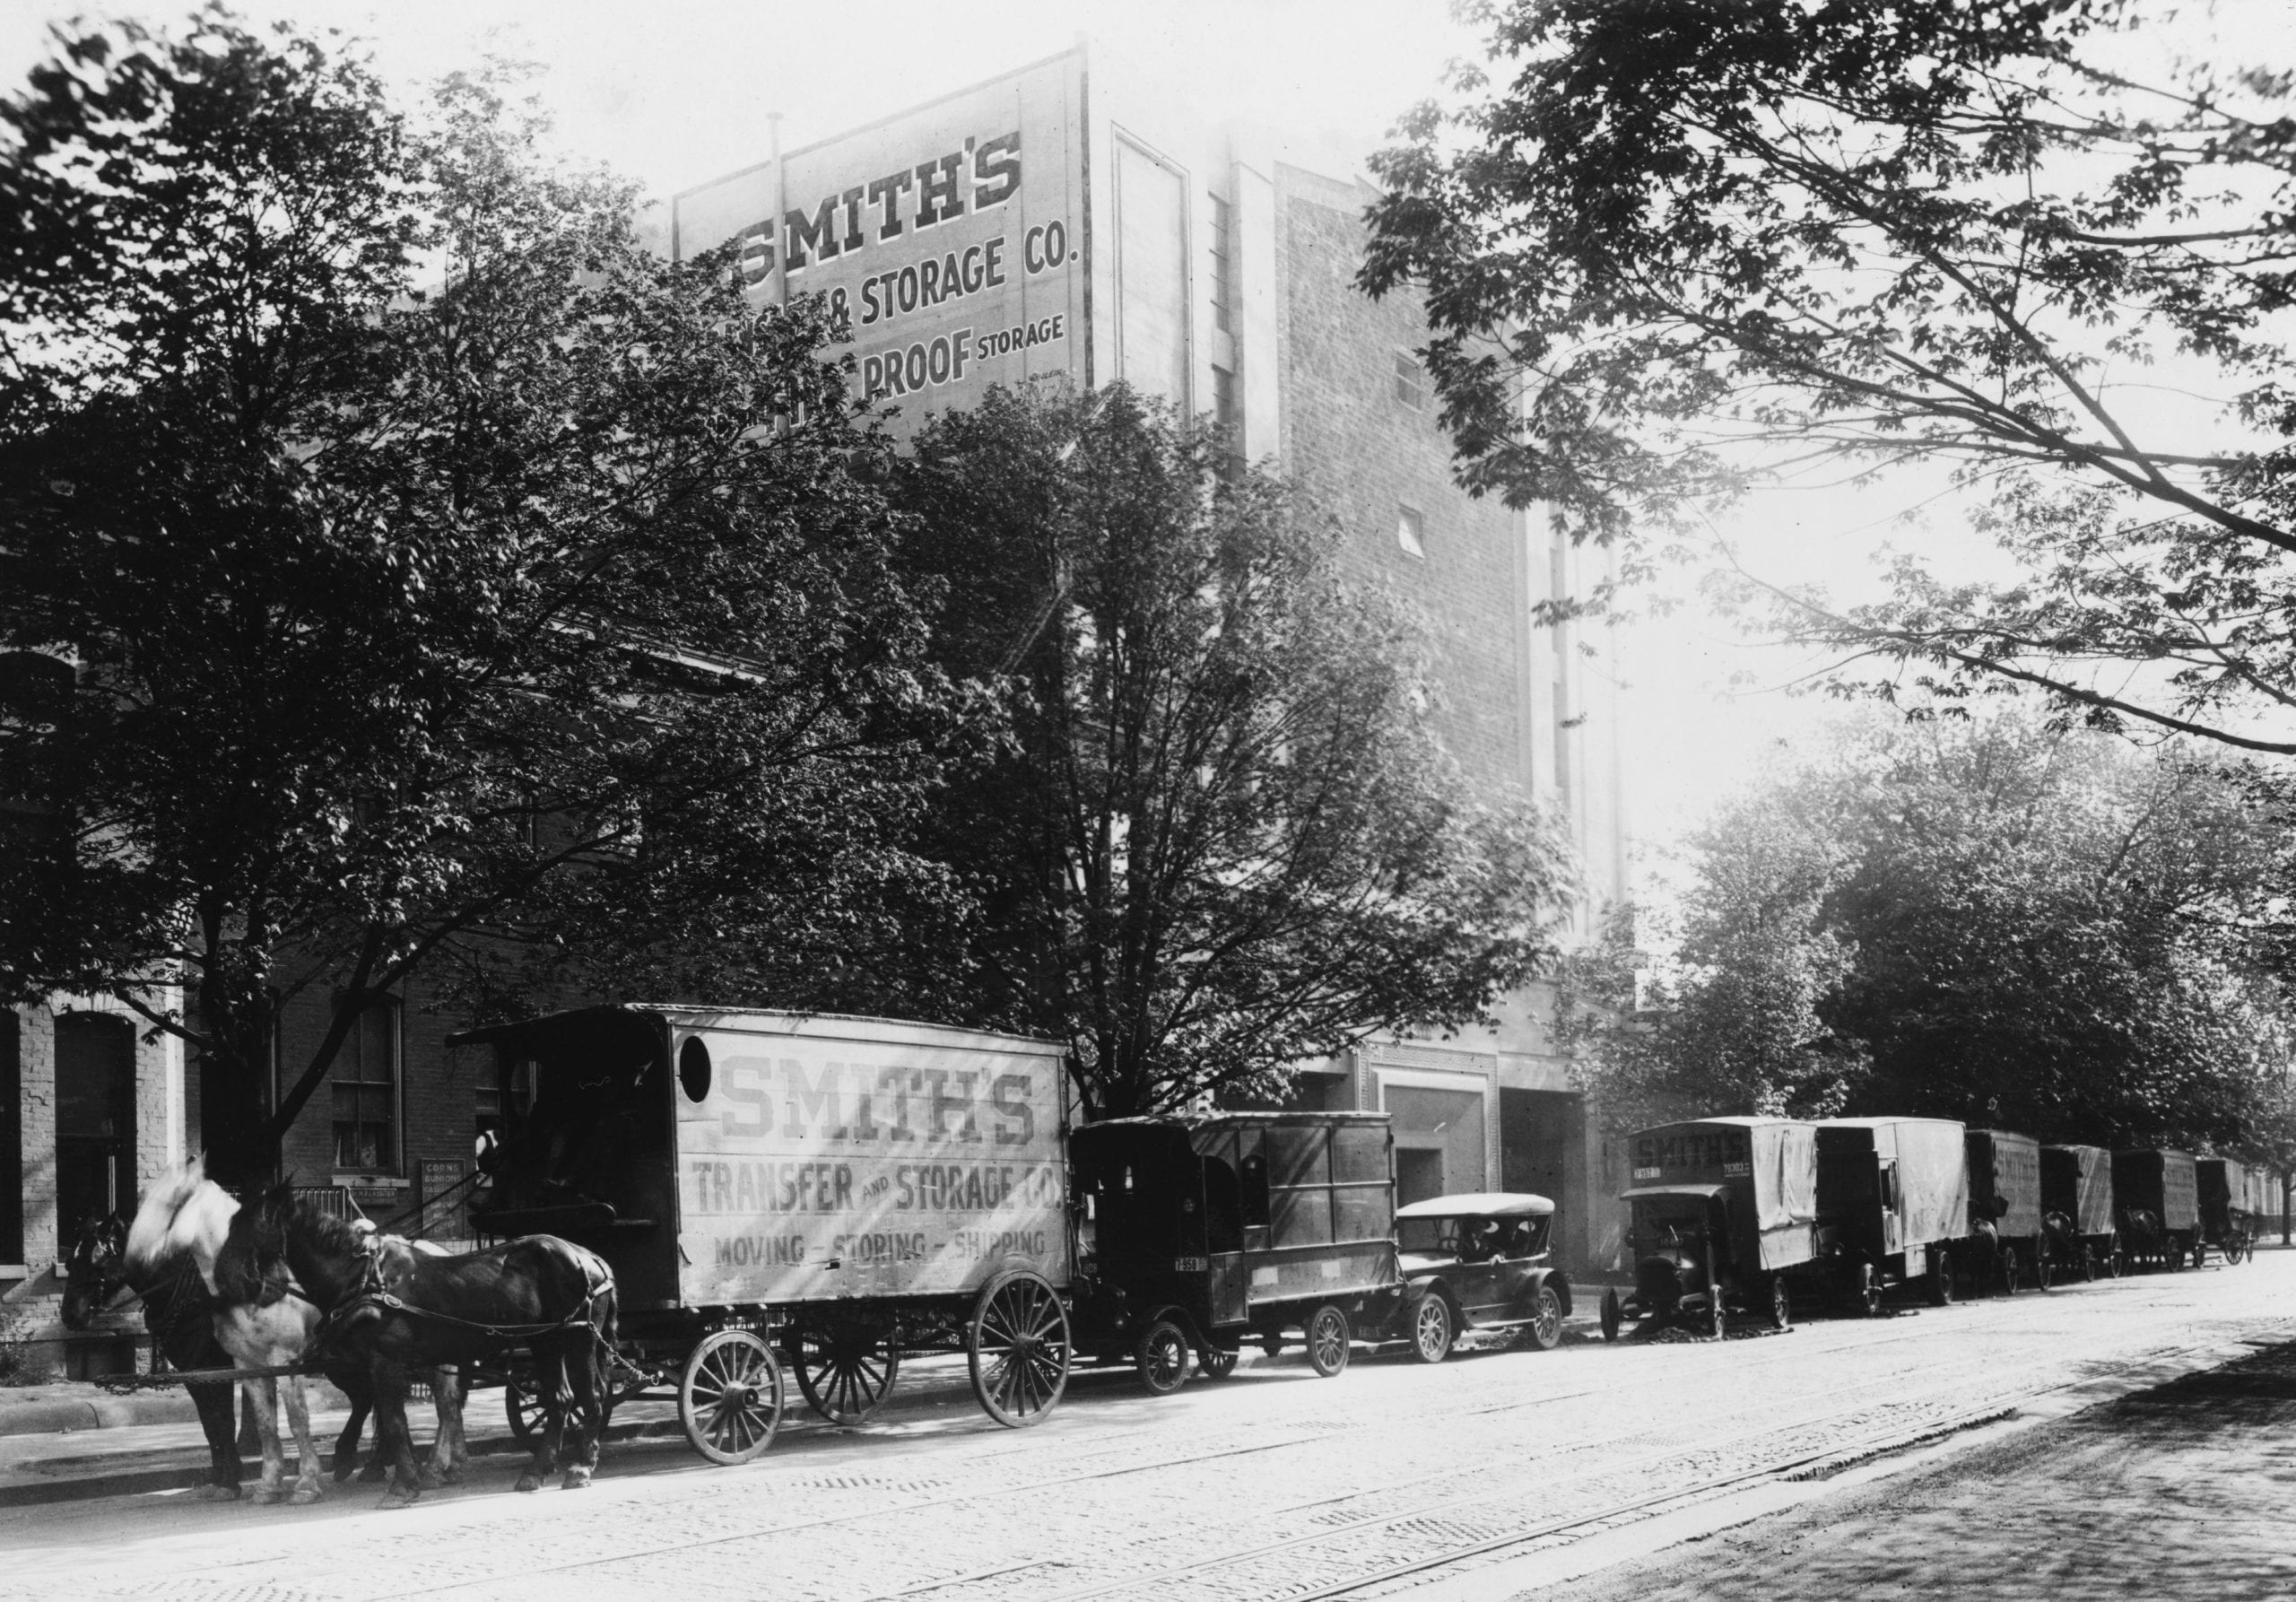 Smith Transfer and Storage Co., 13th & U Streets, N.W., Washington, D.C.